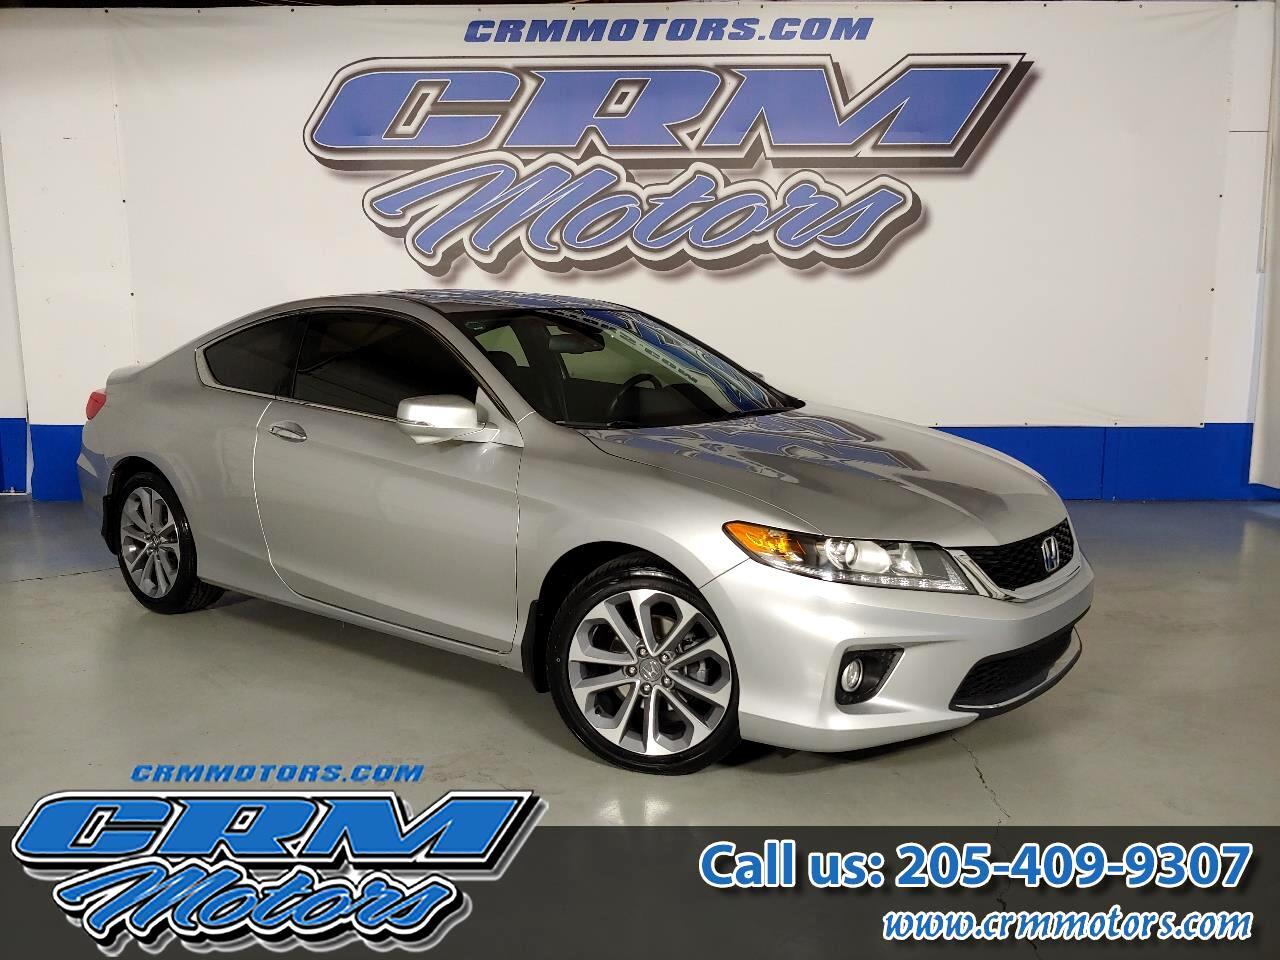 2015 Honda Accord Coupe 2dr V6 Auto EX-L